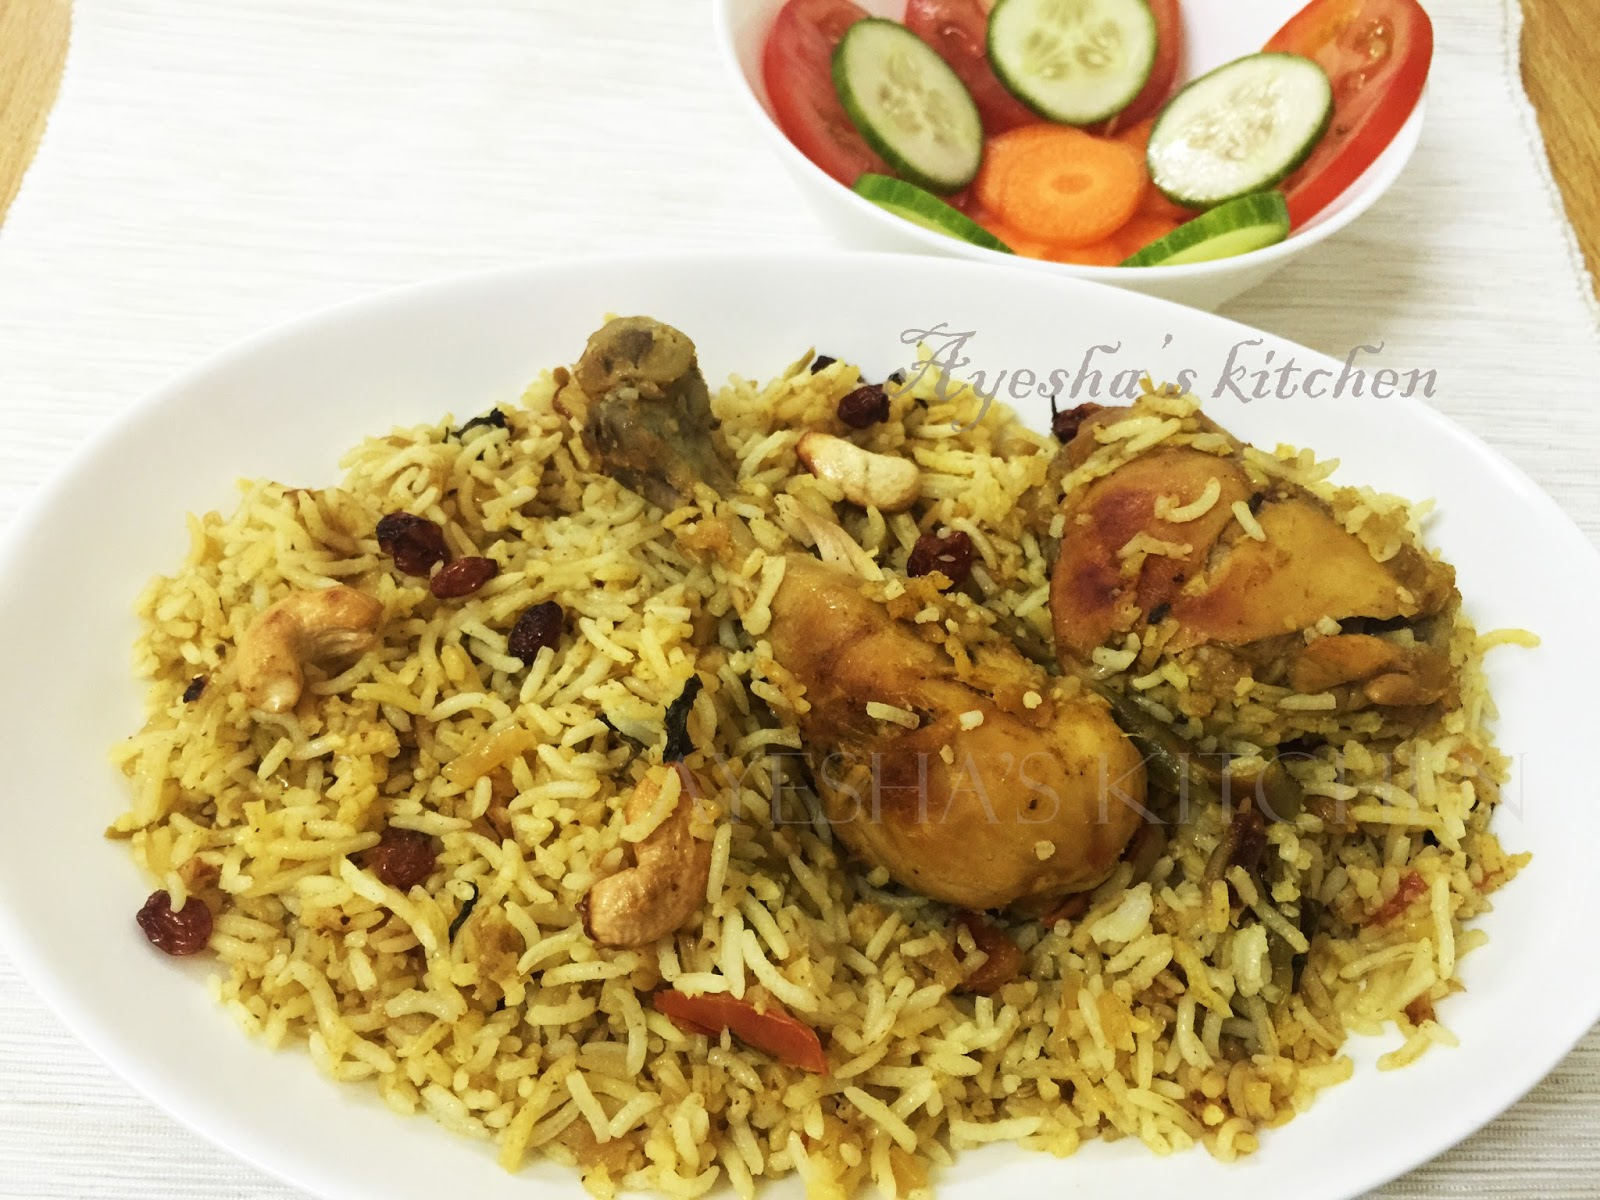 How to make fried chicken biryani malabar fried chicken biryani fried chicken biryani recipe rice recipes ccuart Image collections